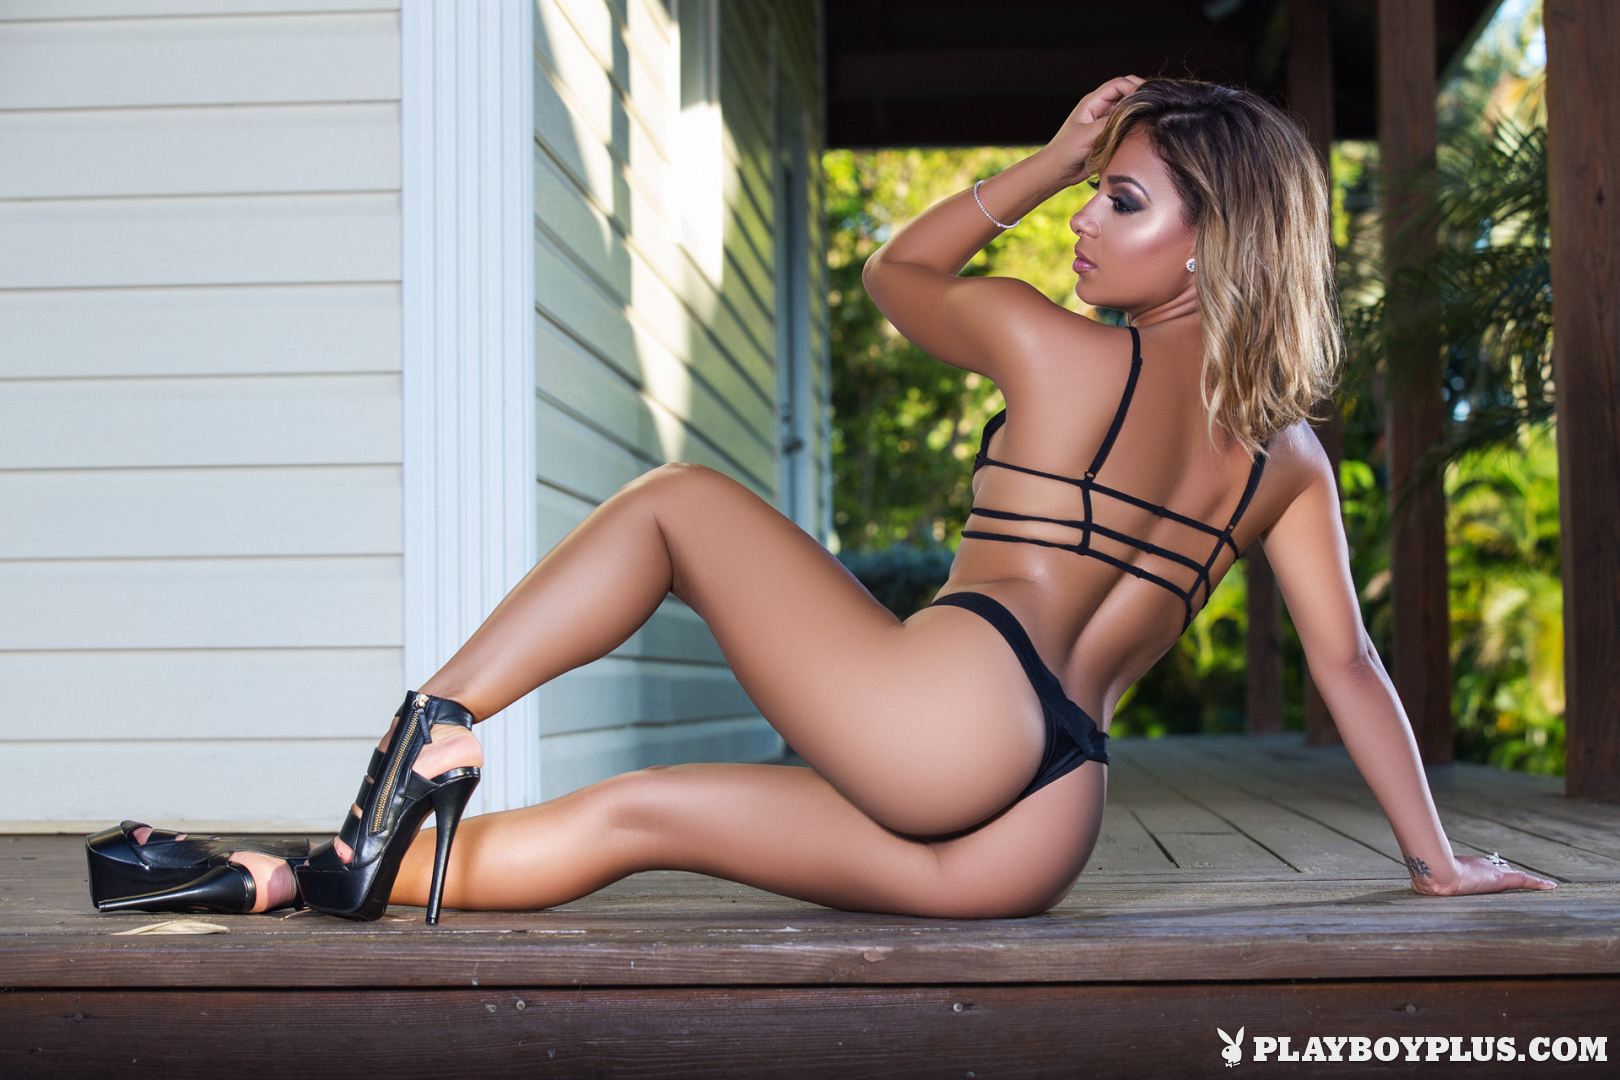 Playboy Cybergirl - Alisette Rodriguez Nude Photos & Videos at Playboy Plus! (in black bikini and high heels)